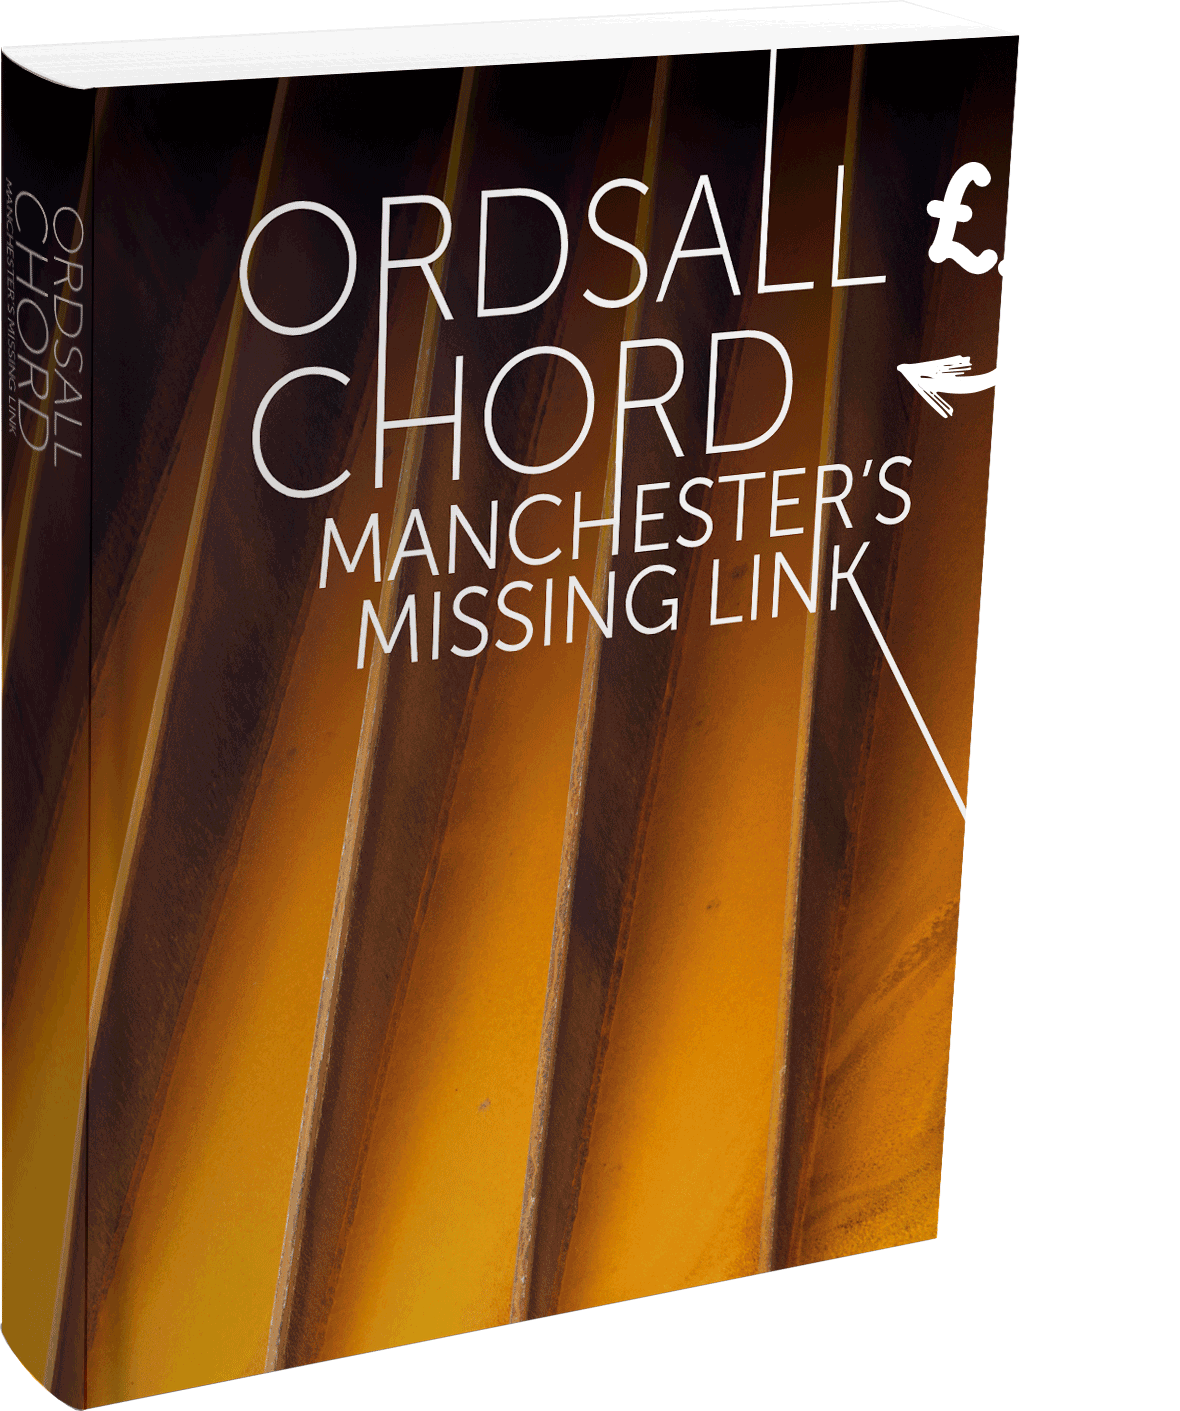 Manchester's Missing Link Book - Ordsall Chord